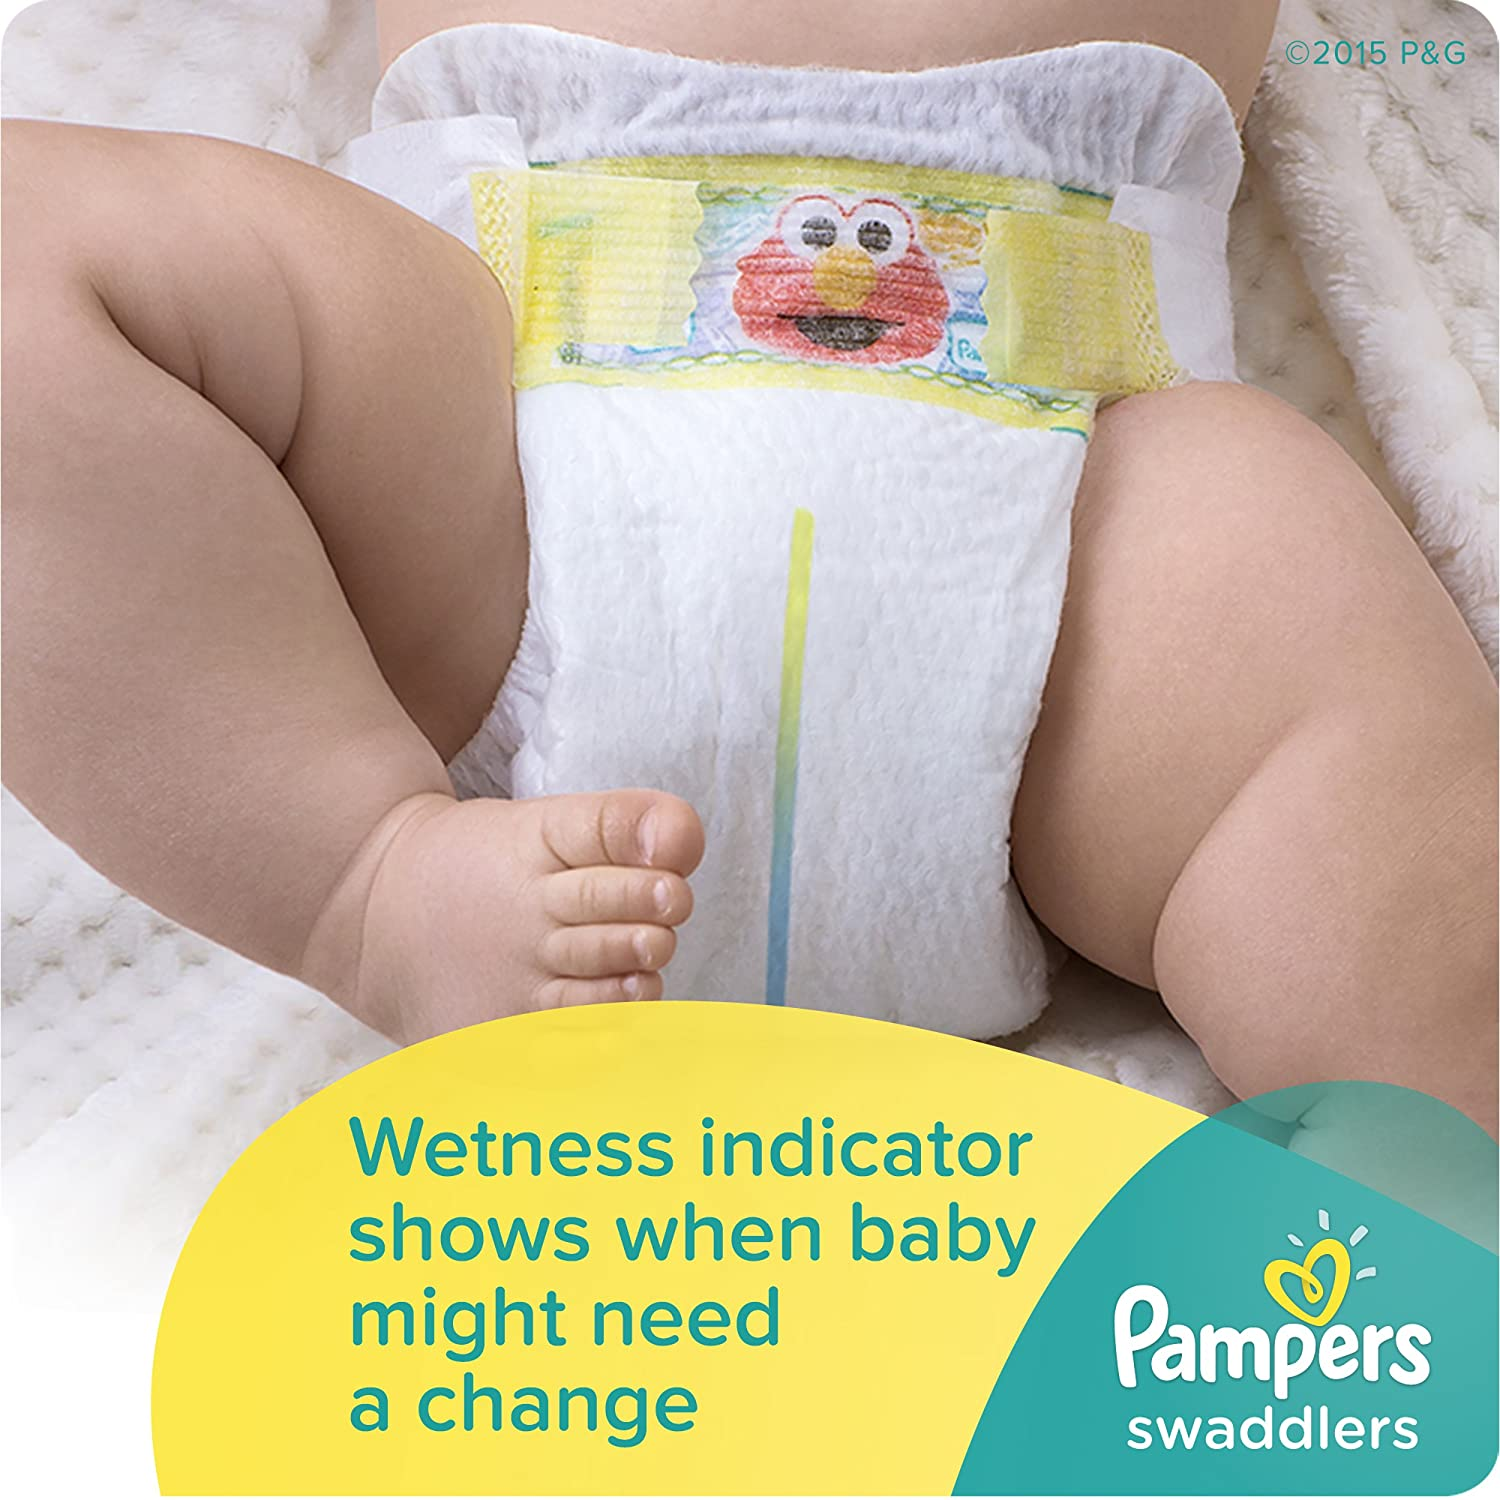 diapers Amazon.com: Pampers Swaddlers Disposable Diapers Size 2, 186 Count, ECONOMY  PACK PLUS: Health & Personal Care